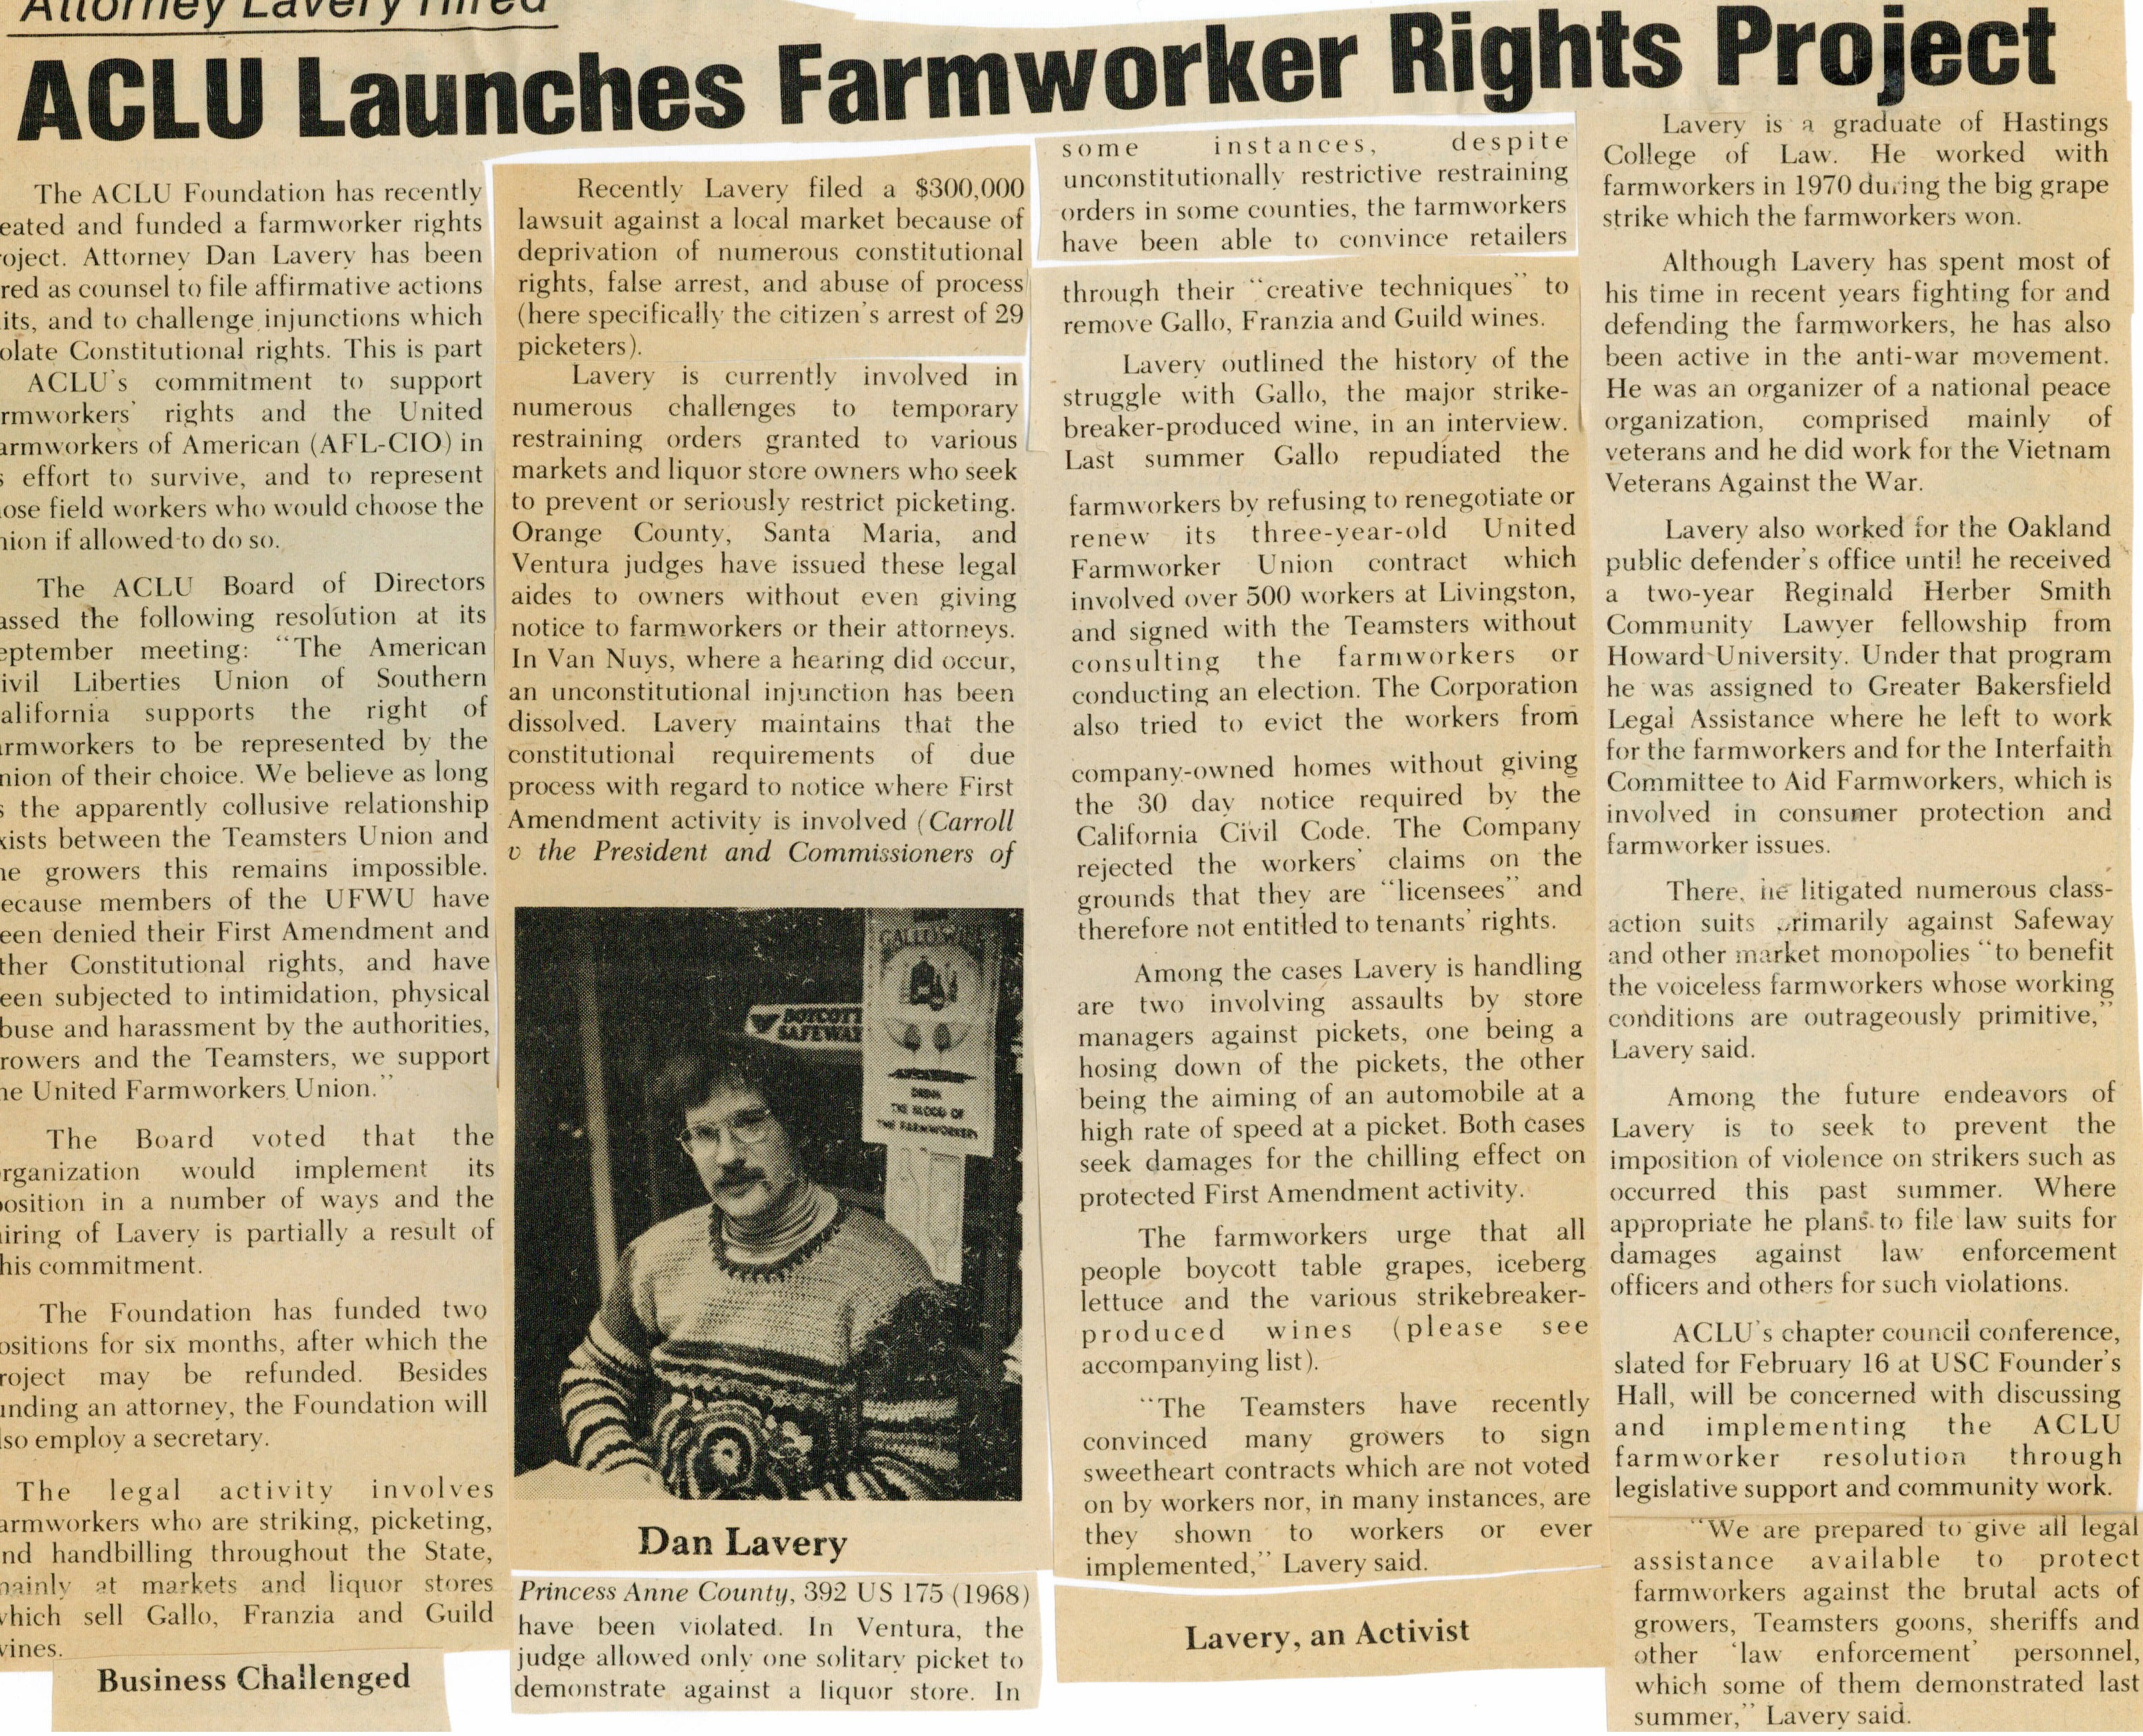 Dan hired by ACLU for farmworker project in Los Angeles 1974